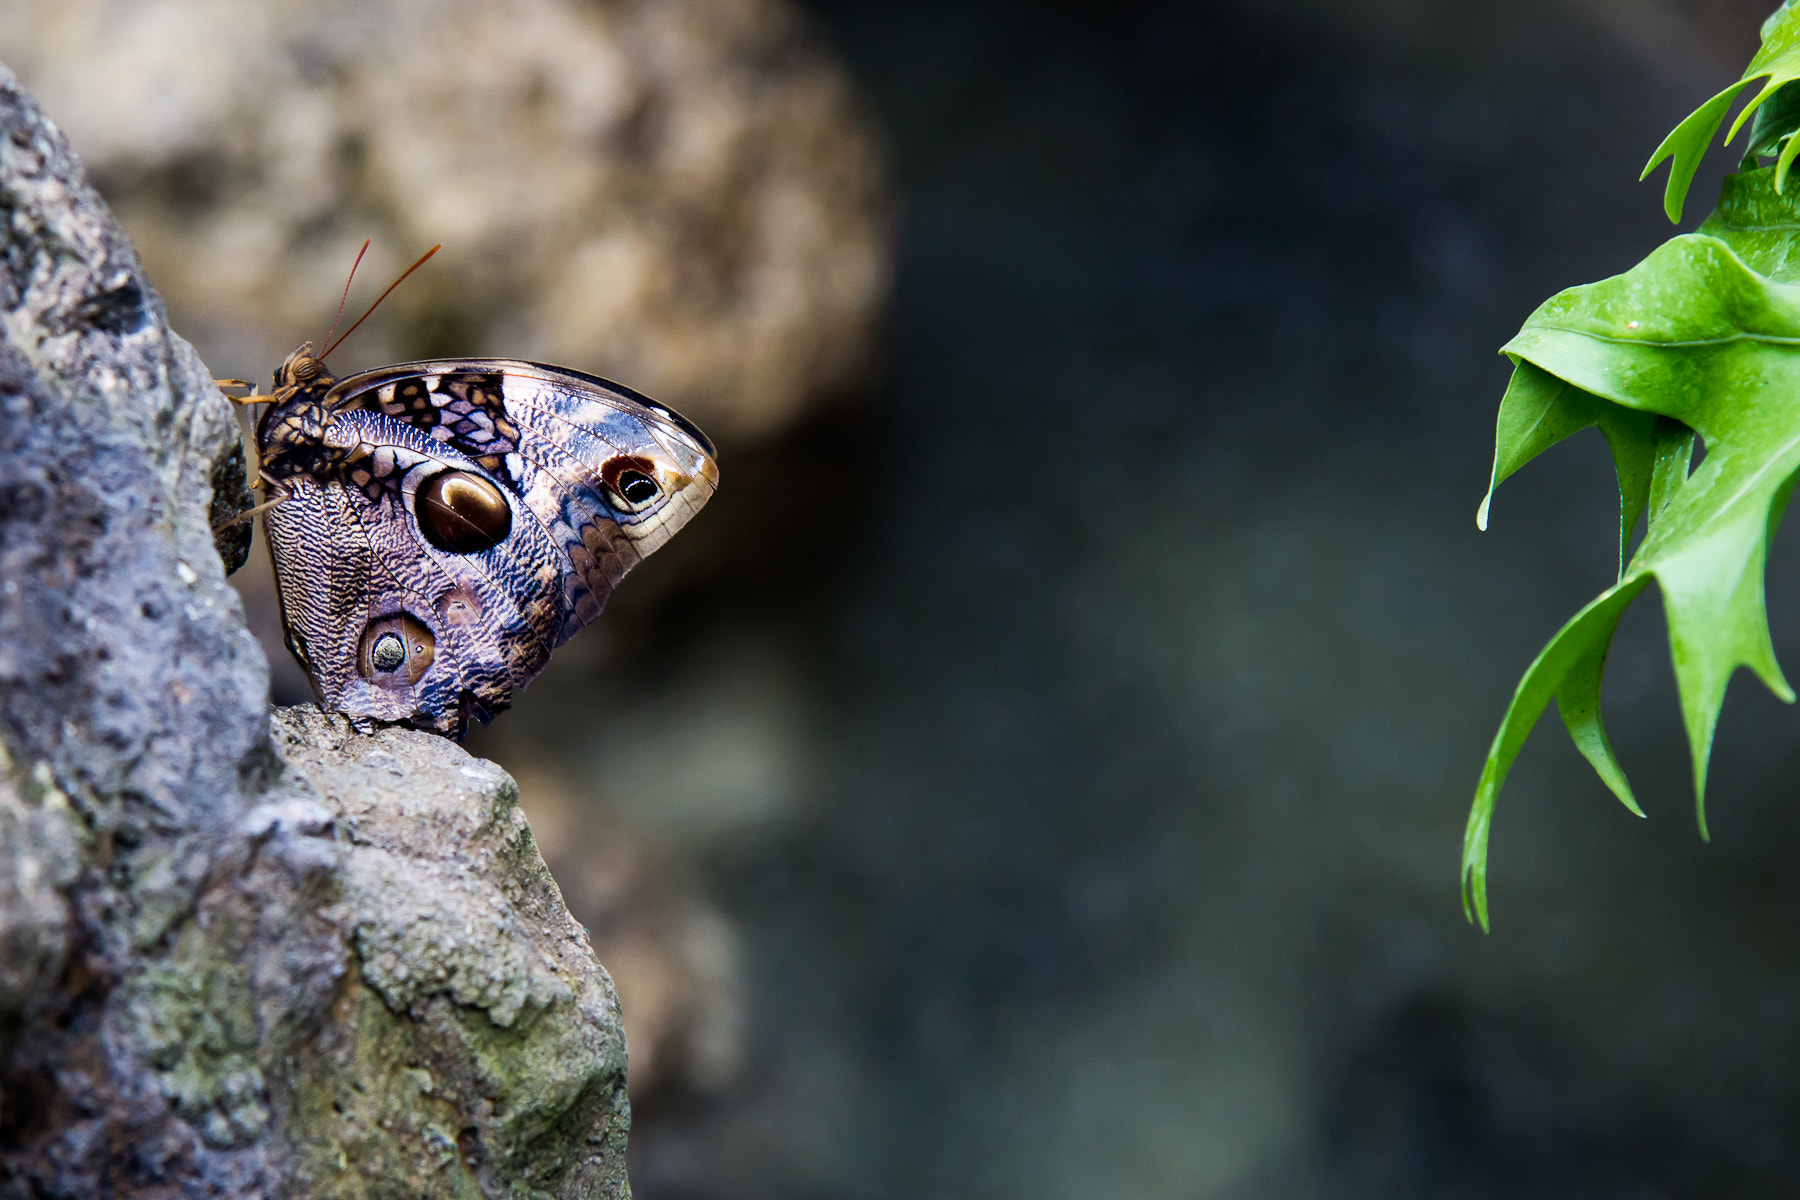 Photograph Sleeping Moth by Alexandre Lahaise on 500px